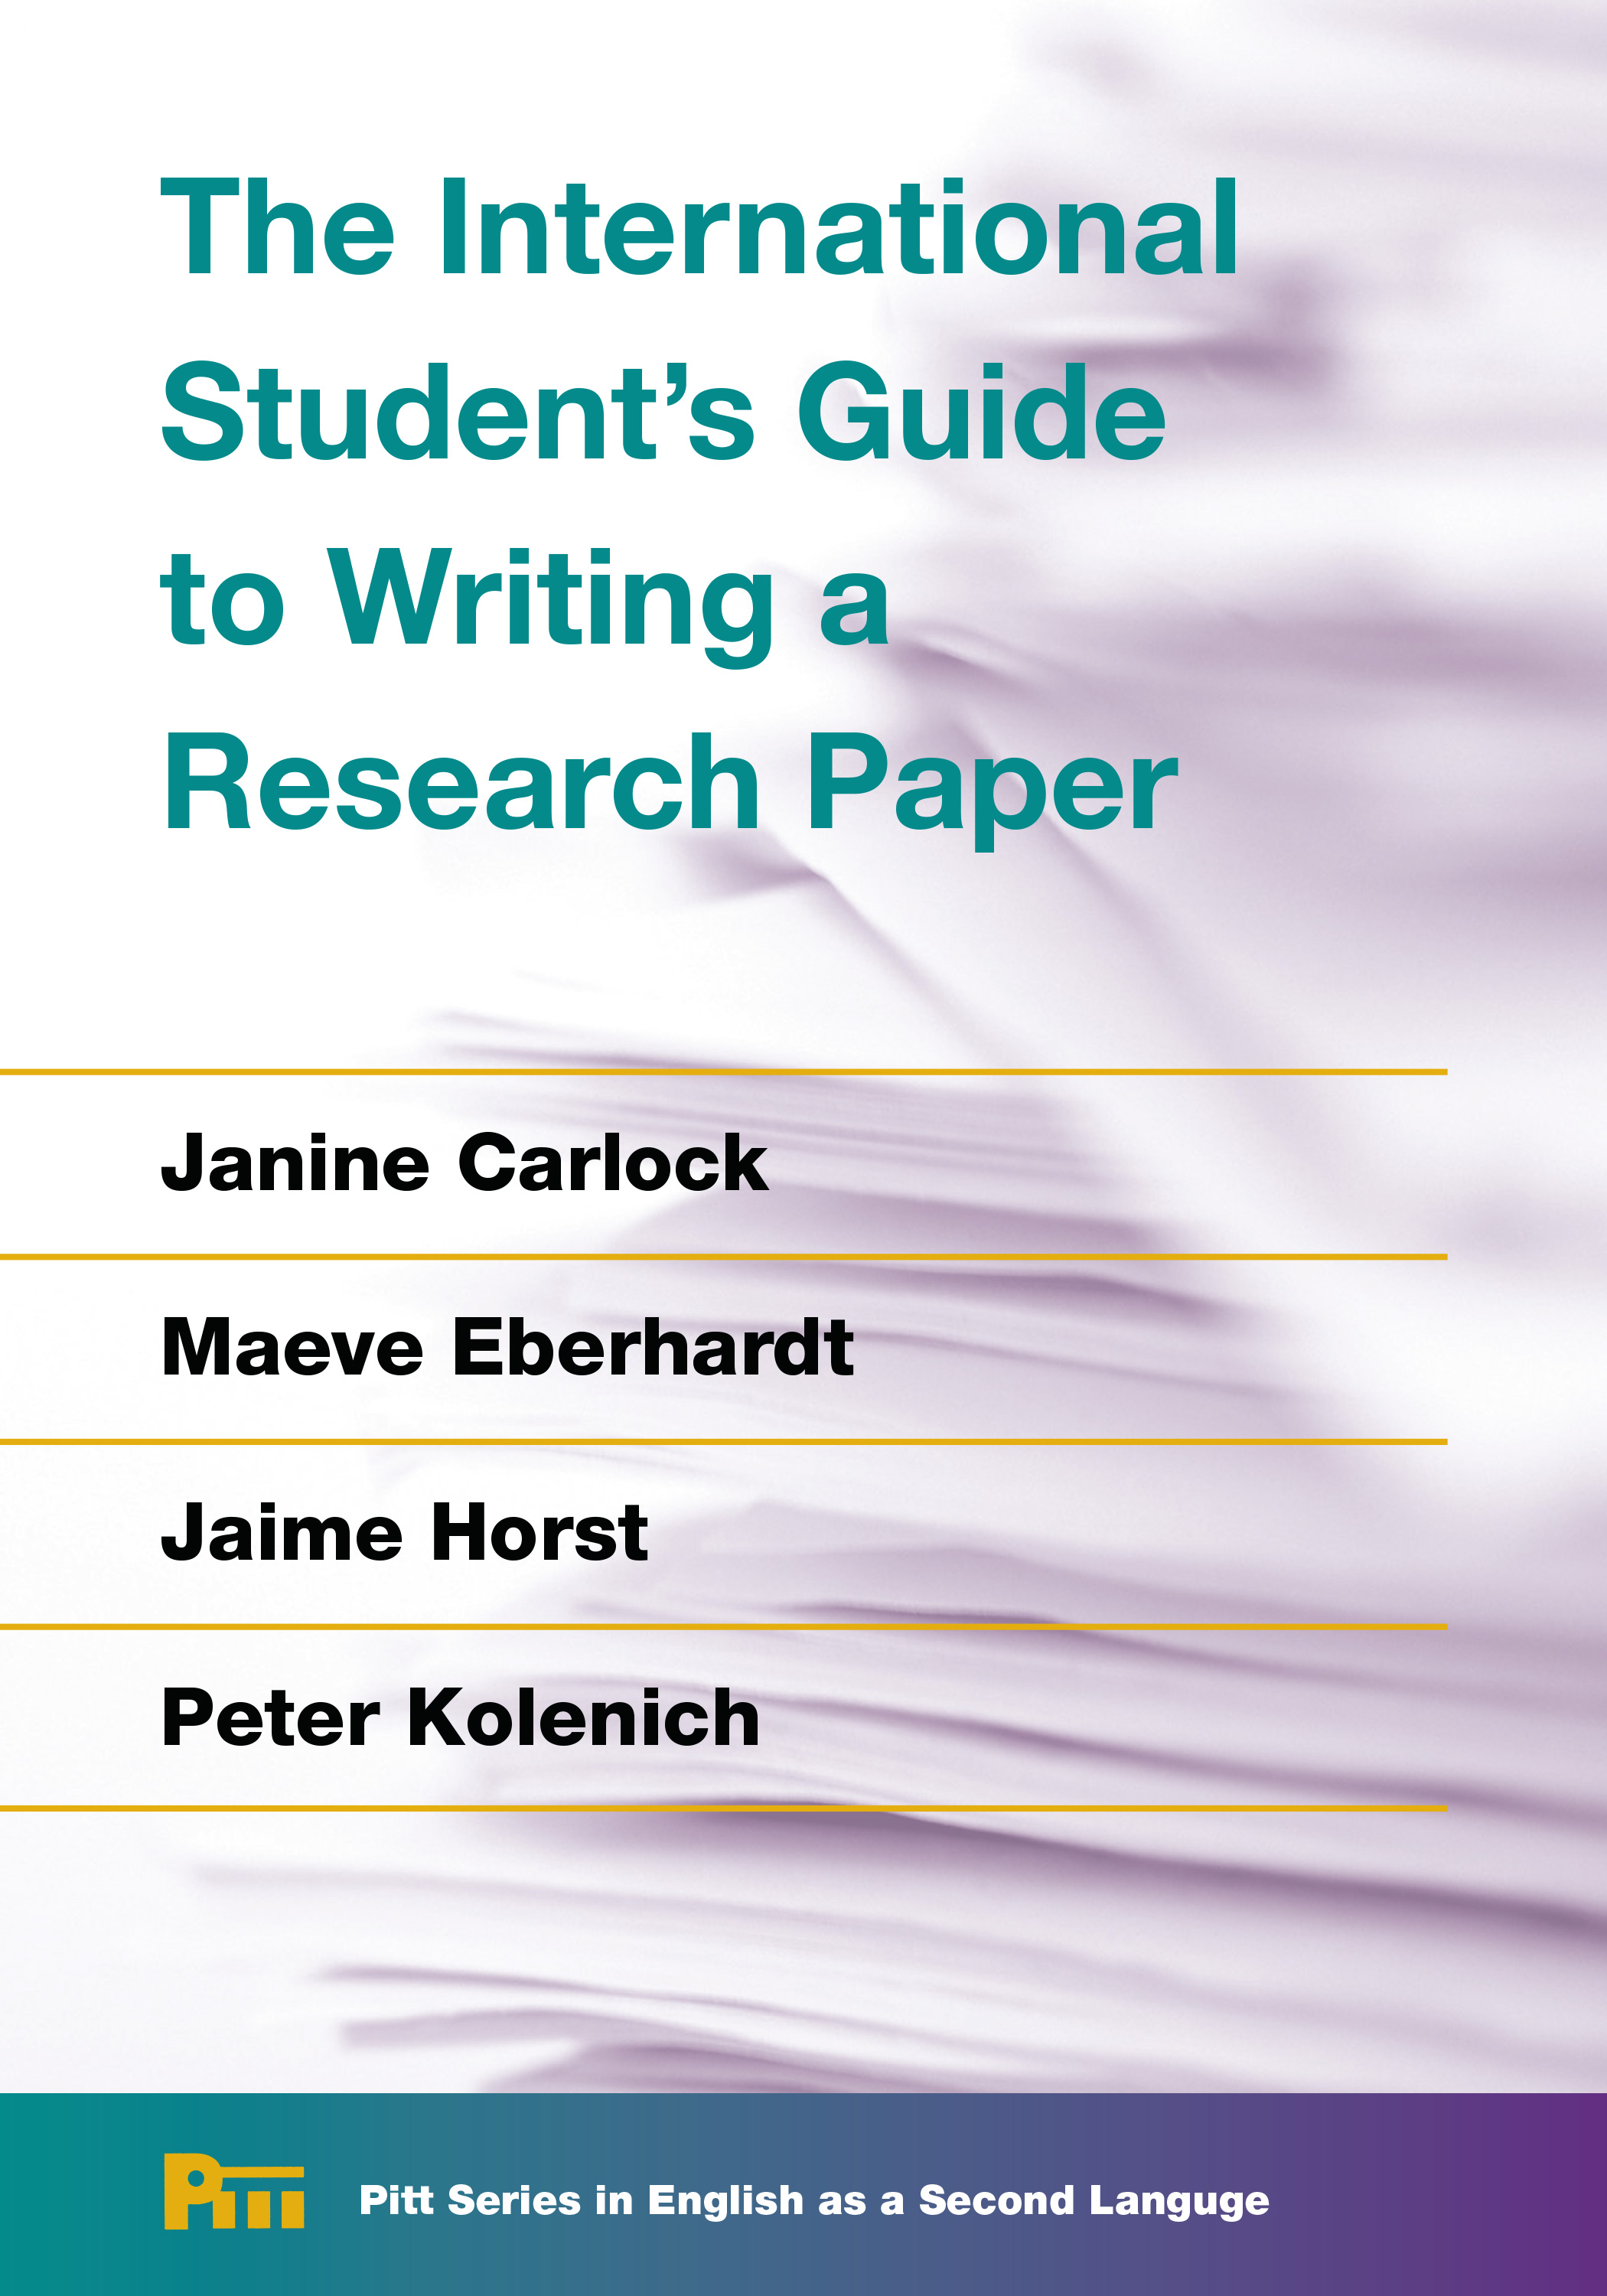 013 Writing The Research Paper Phenomenal How To Write Outline A Pdf Handbook 8th Edition Full